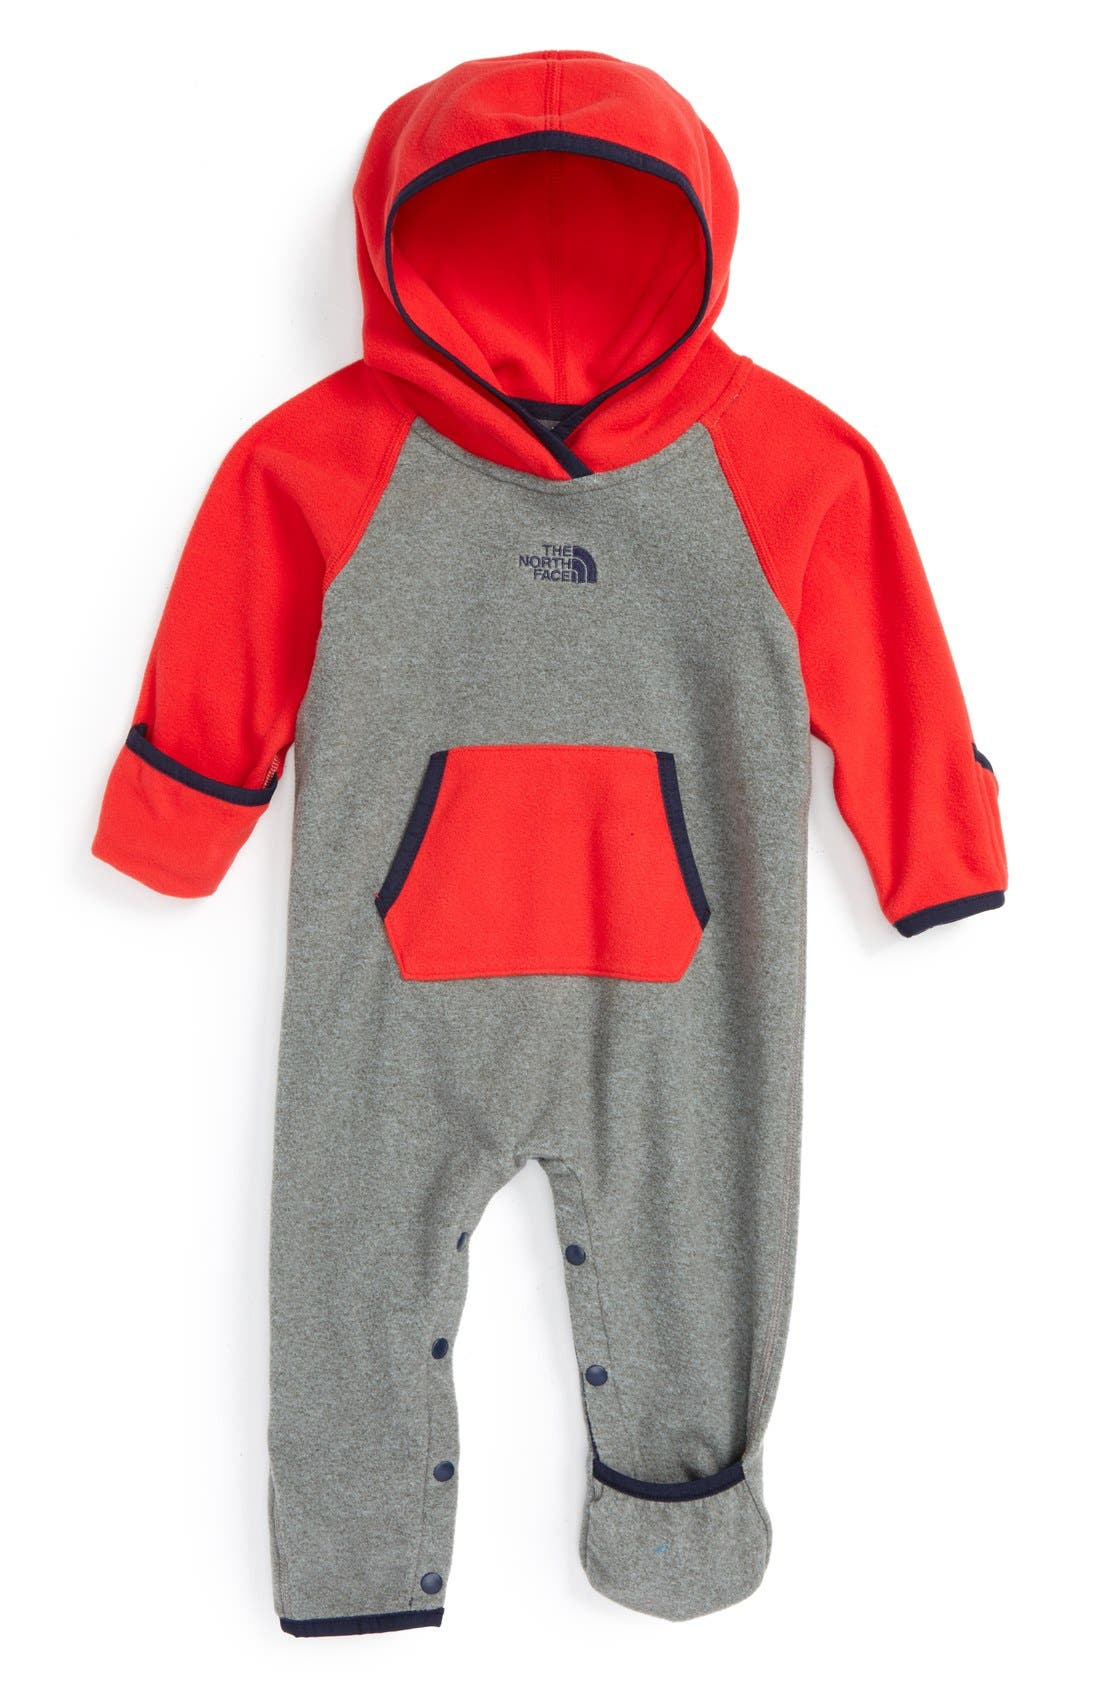 Alternate Image 1 Selected - The North Face 'Glacier' Hooded Romper (Baby Boys)